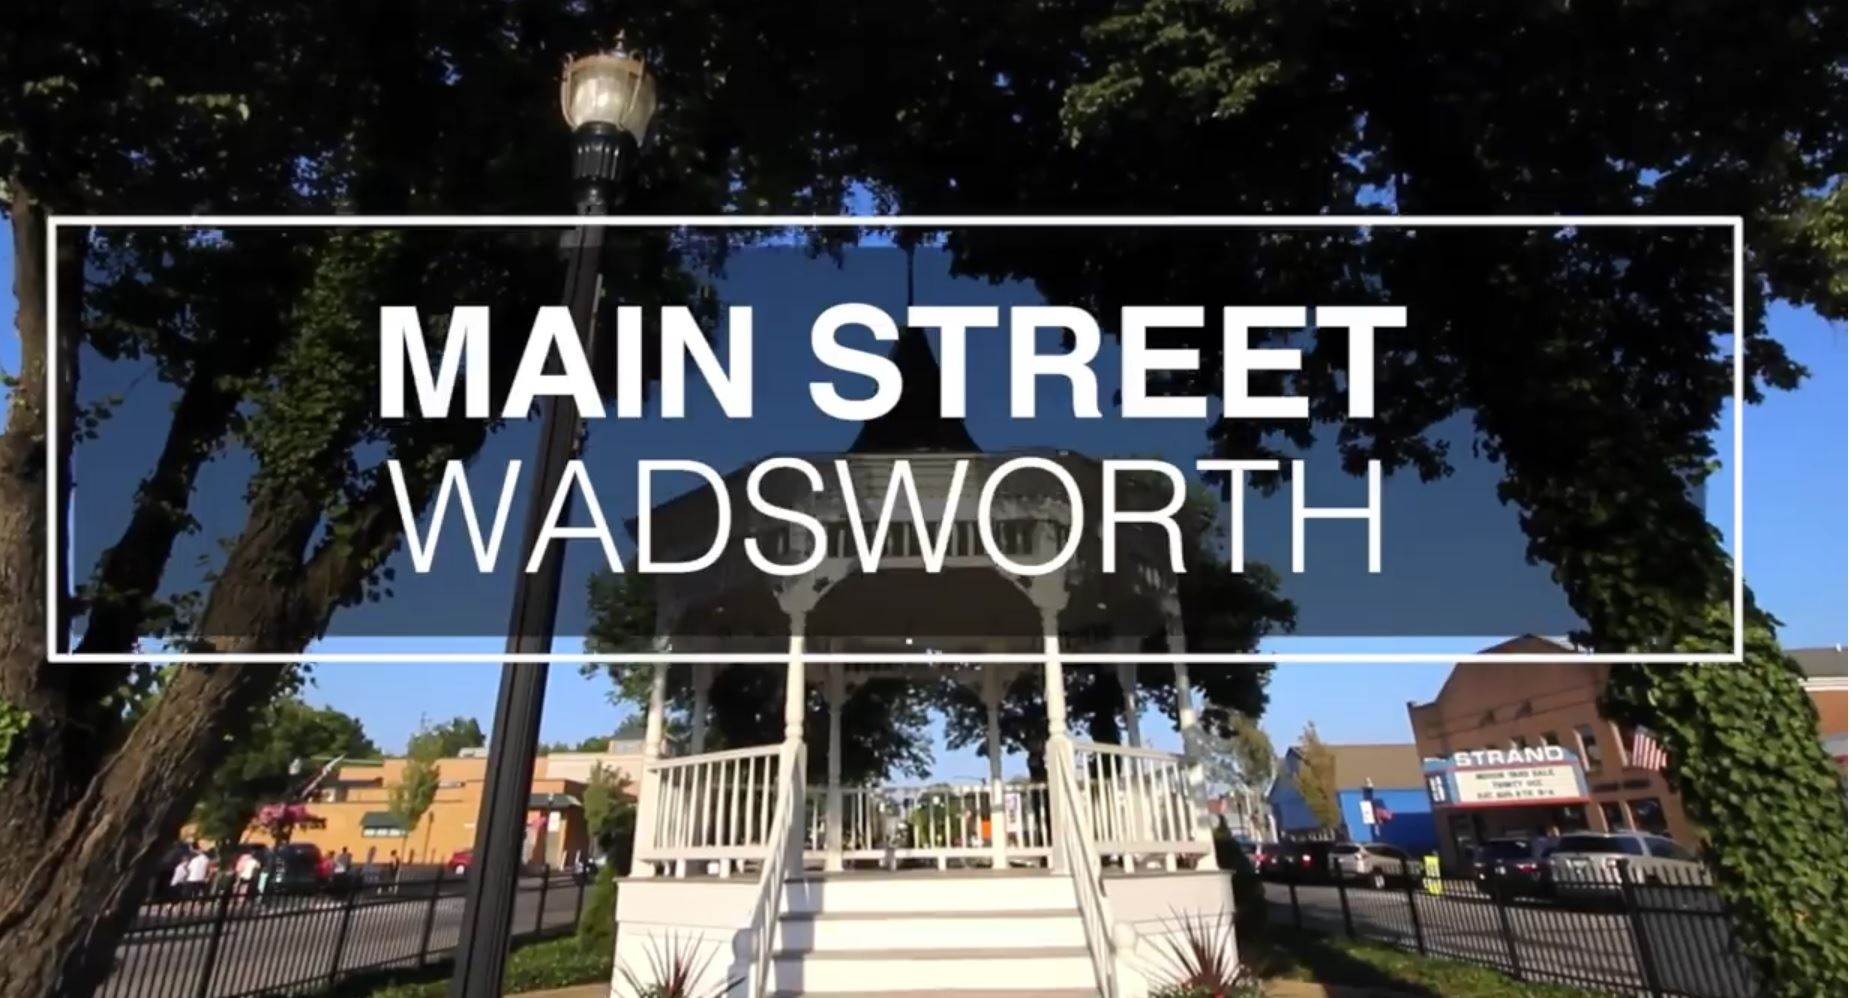 main street wadsworth